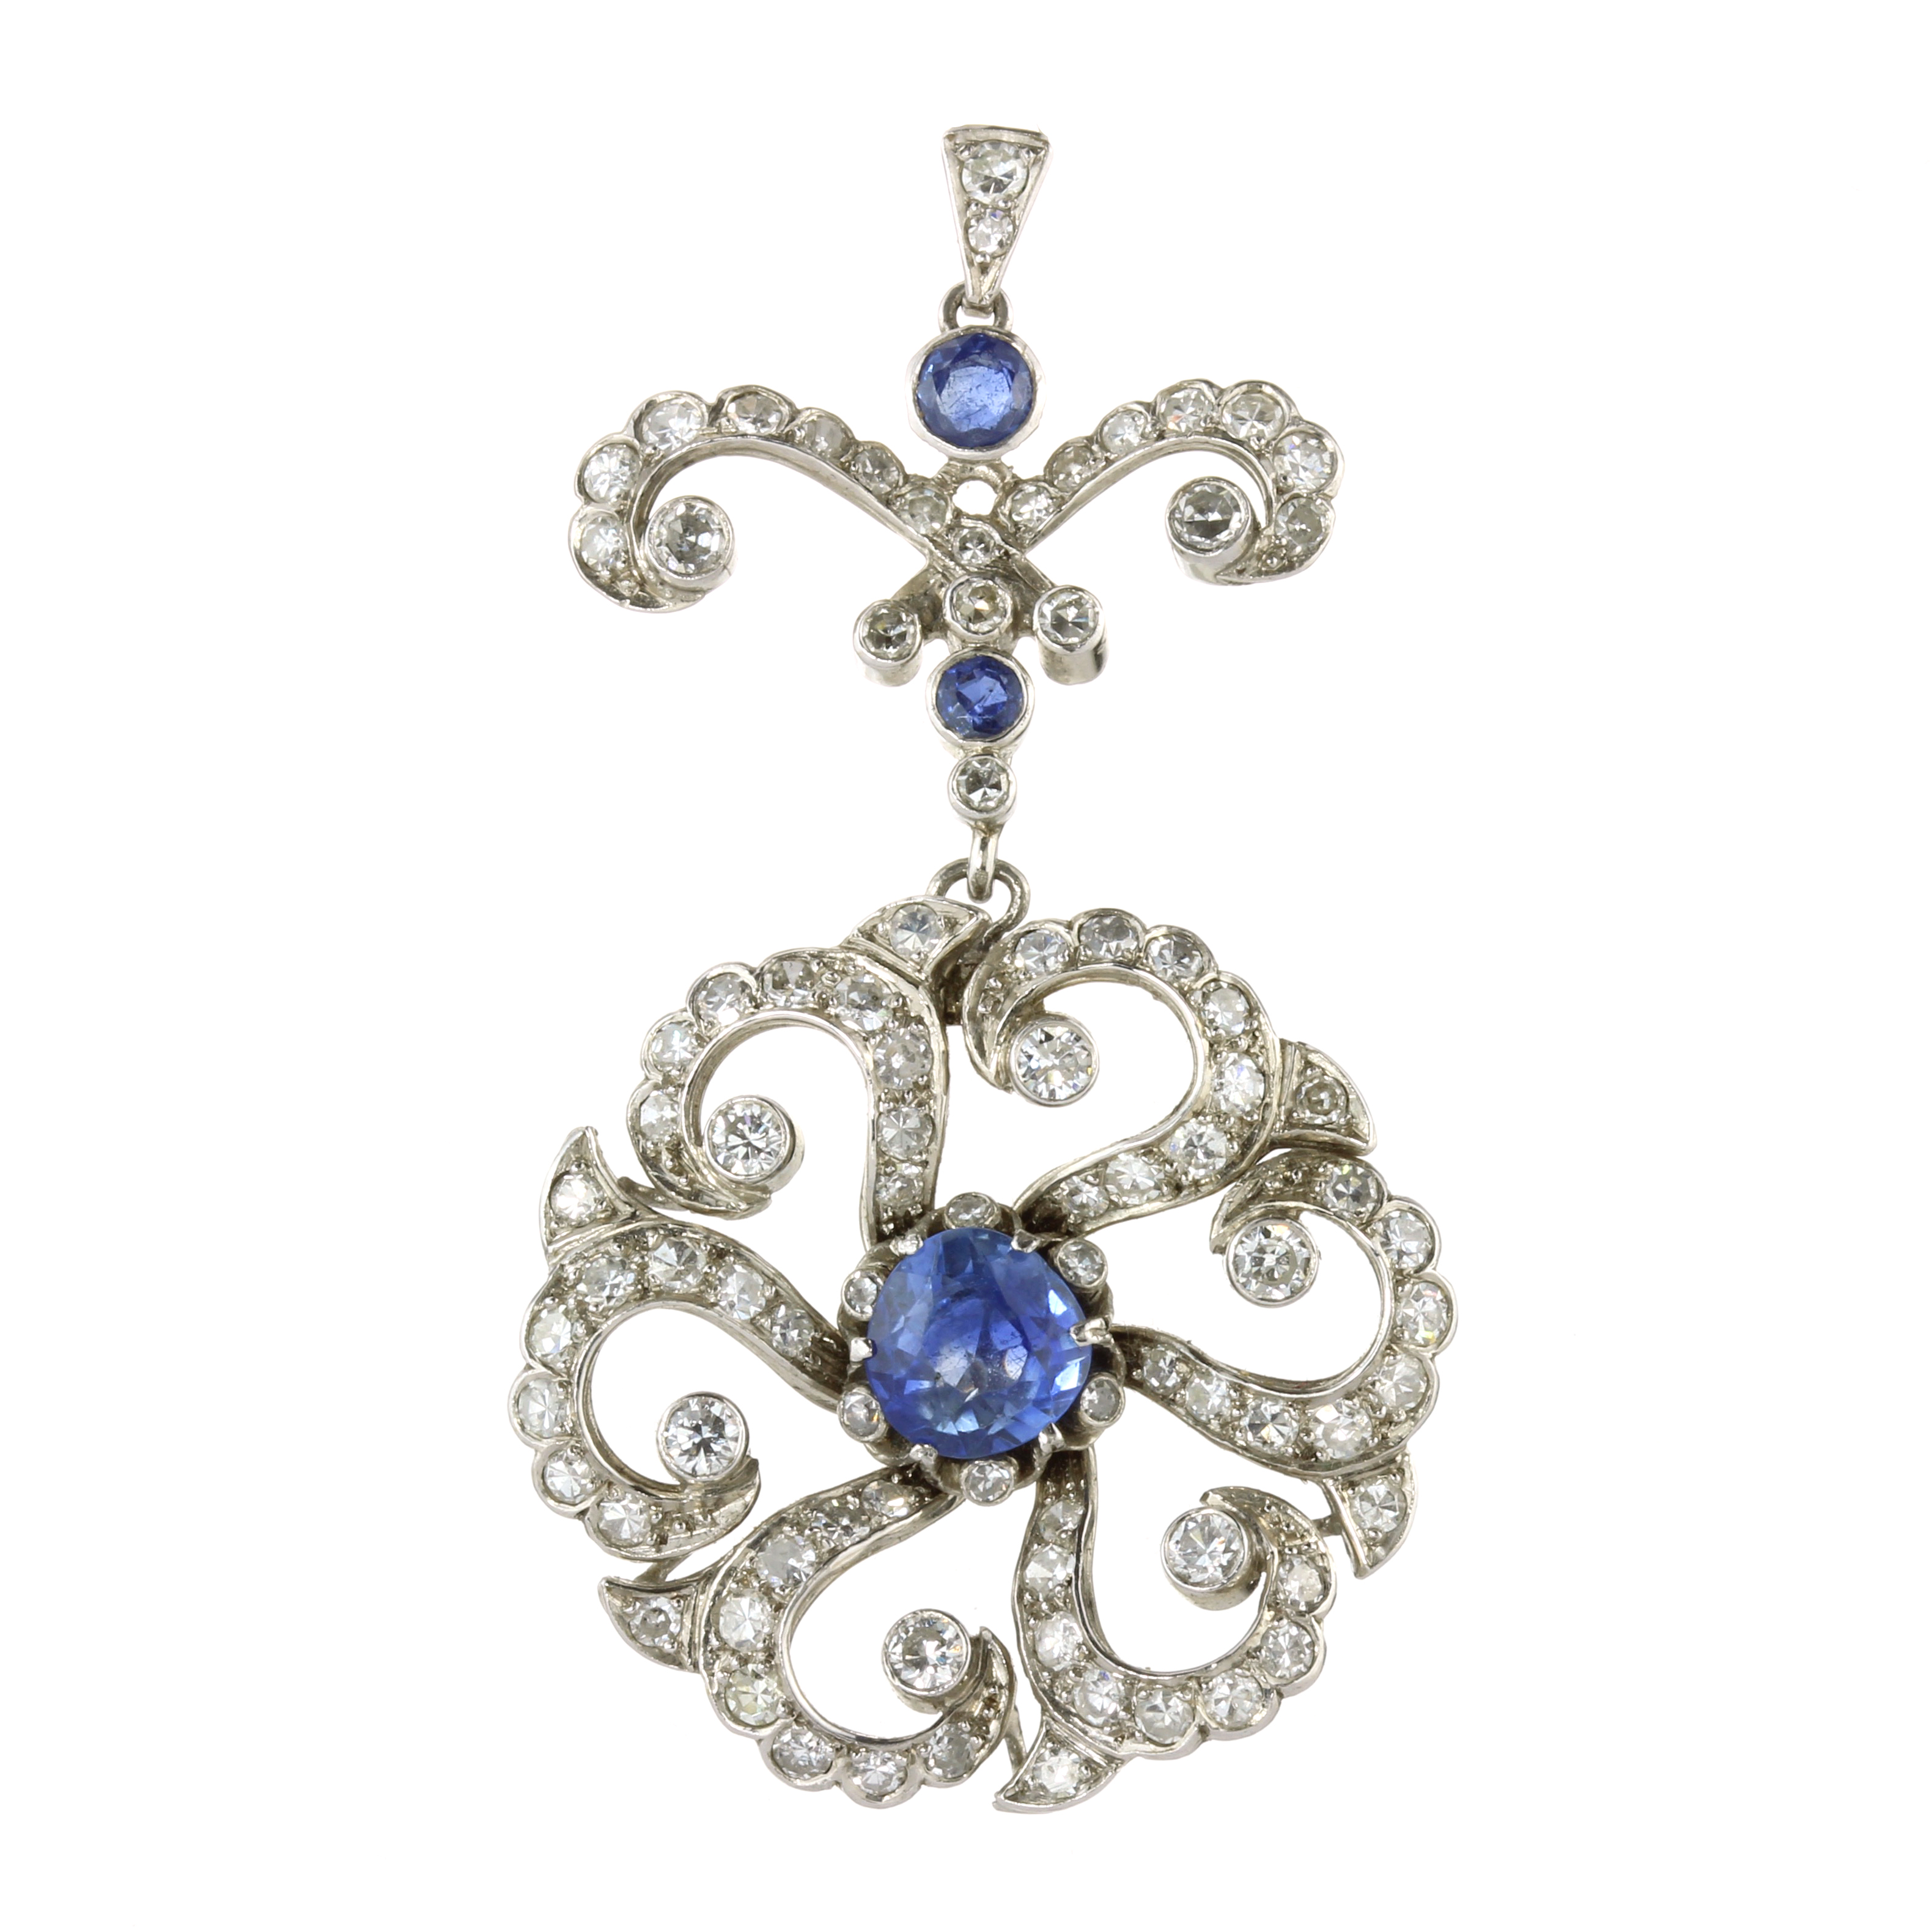 AN ANTIQUE CEYLON NO HEAT BLUE SAPPHIRE AND DIAMOND PENDANT in white gold or platinum, set with a